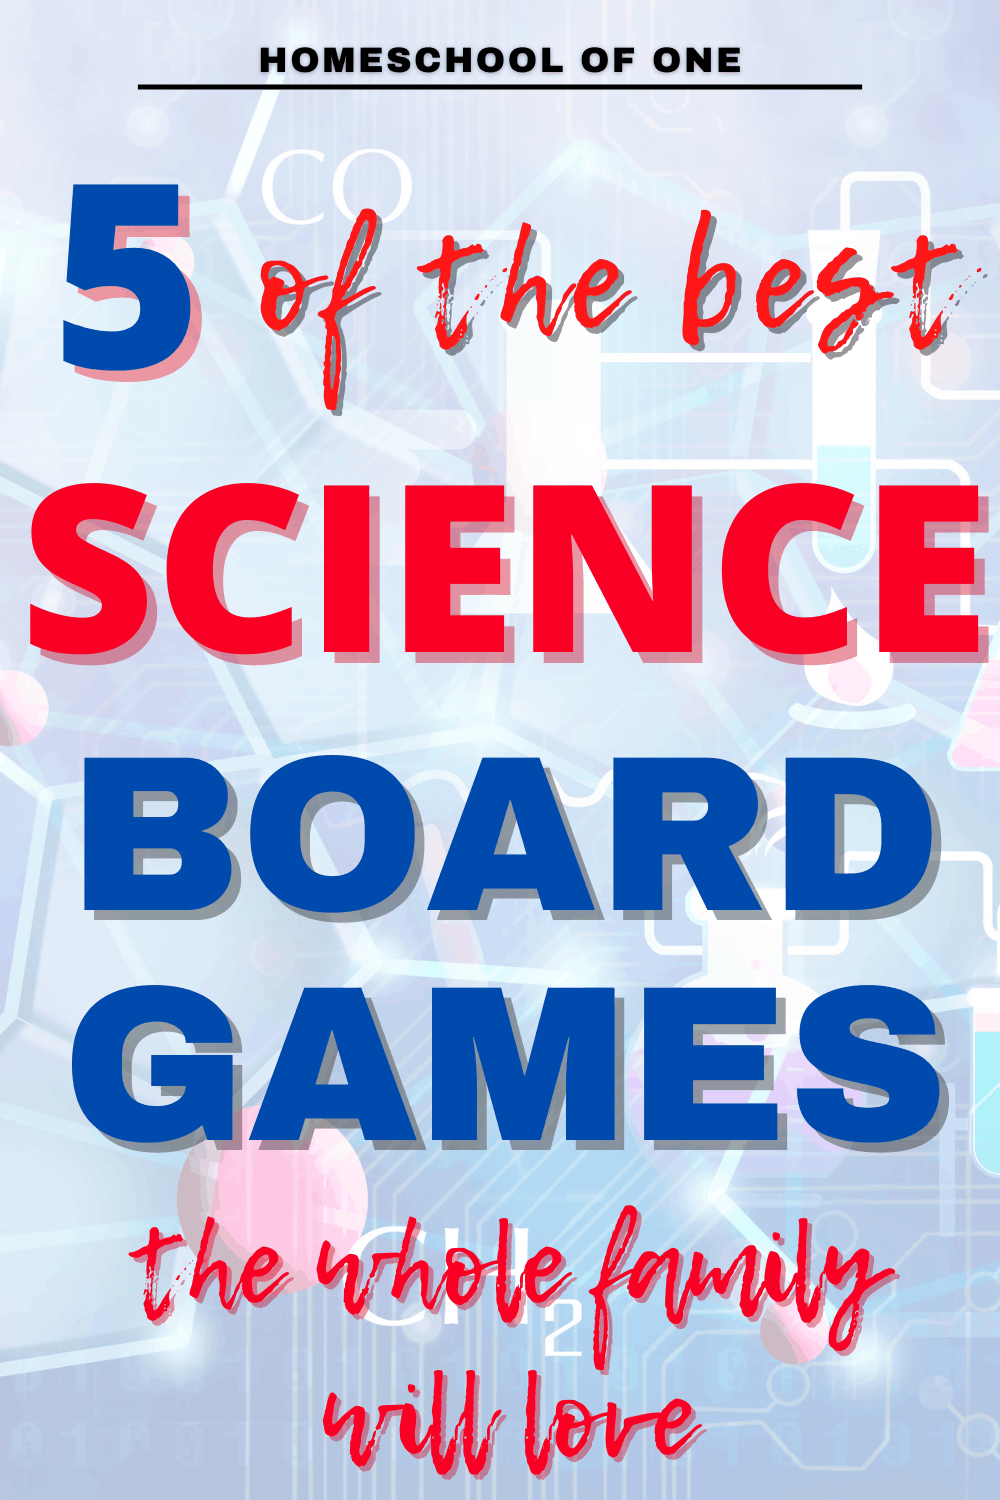 5 of the best science board games that your whole family will love. Perfect for homeschooling families #science #boardgames